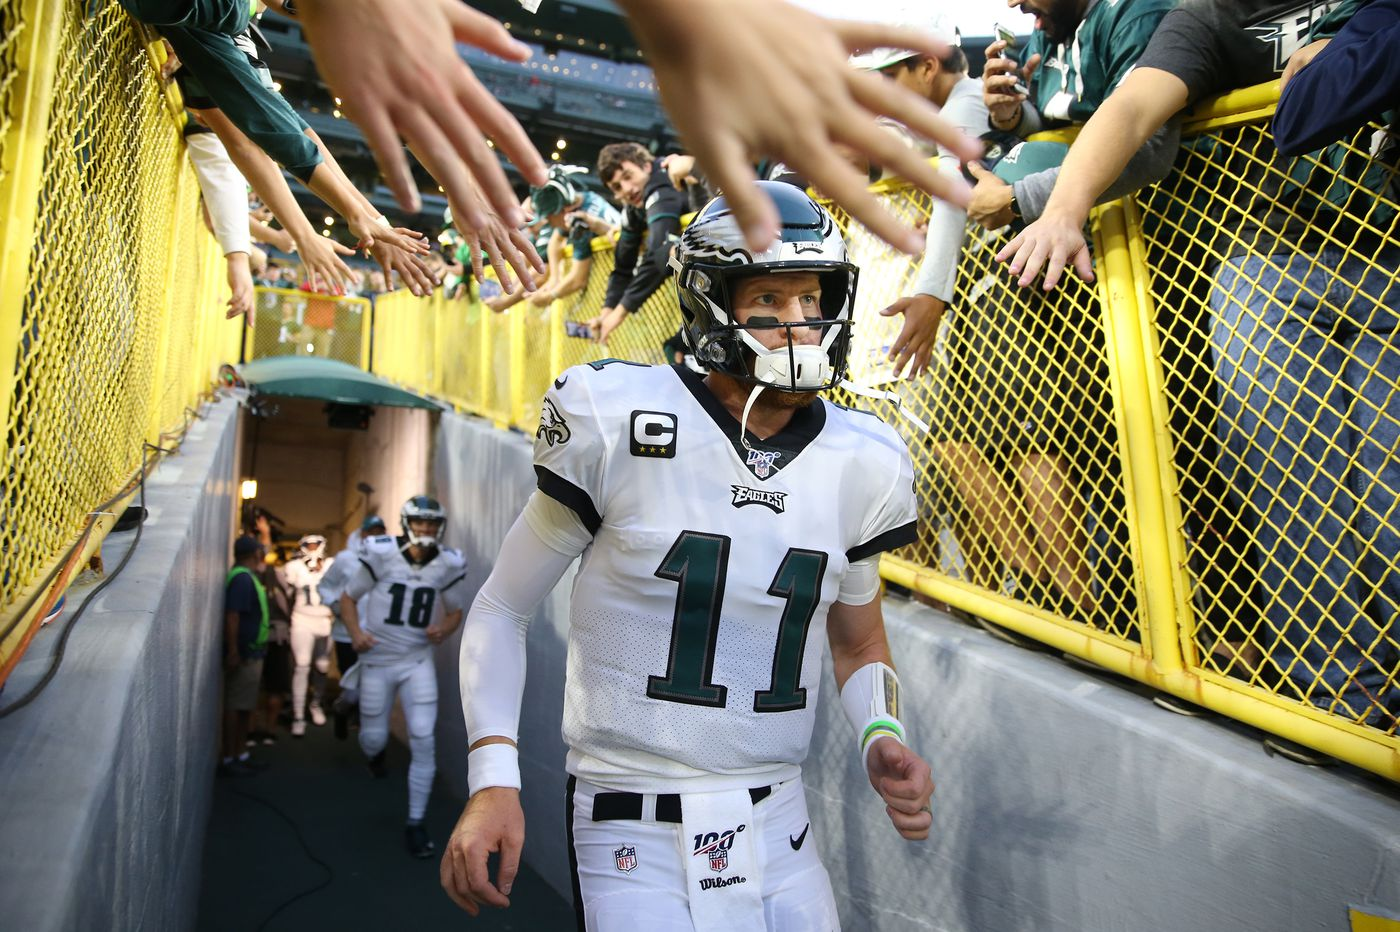 Eagles make big jump on NFL power rankings lists, thanks largely to Carson Wentz